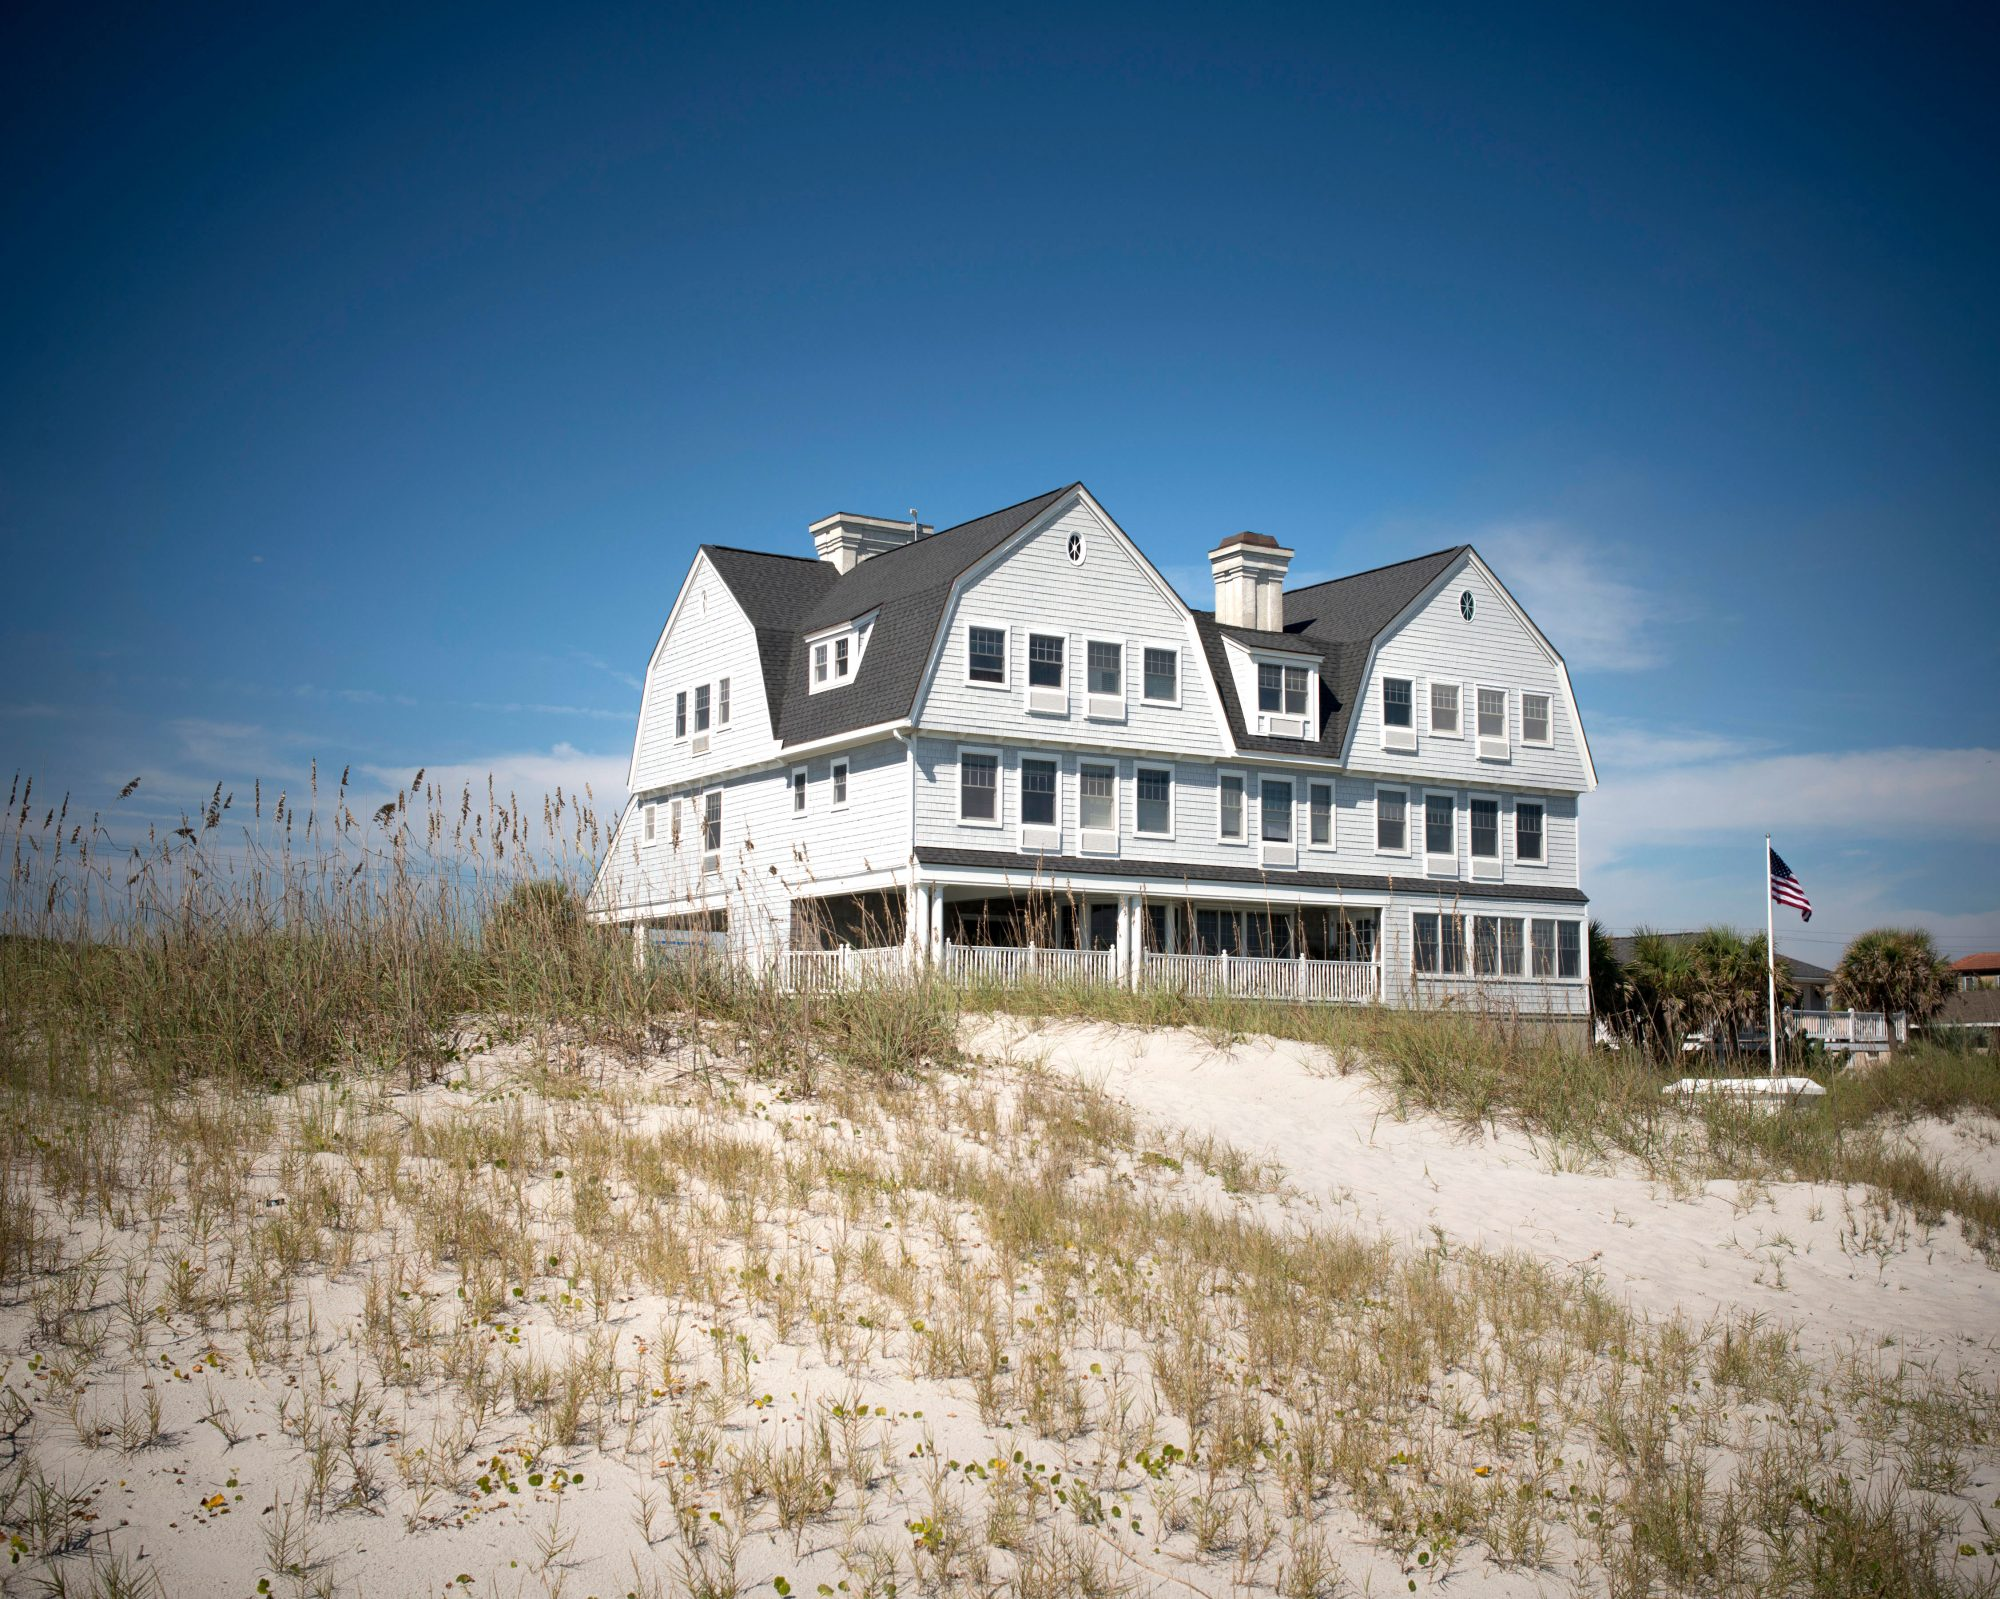 Elizabeth Point Lodge in Amelia Island, Florida